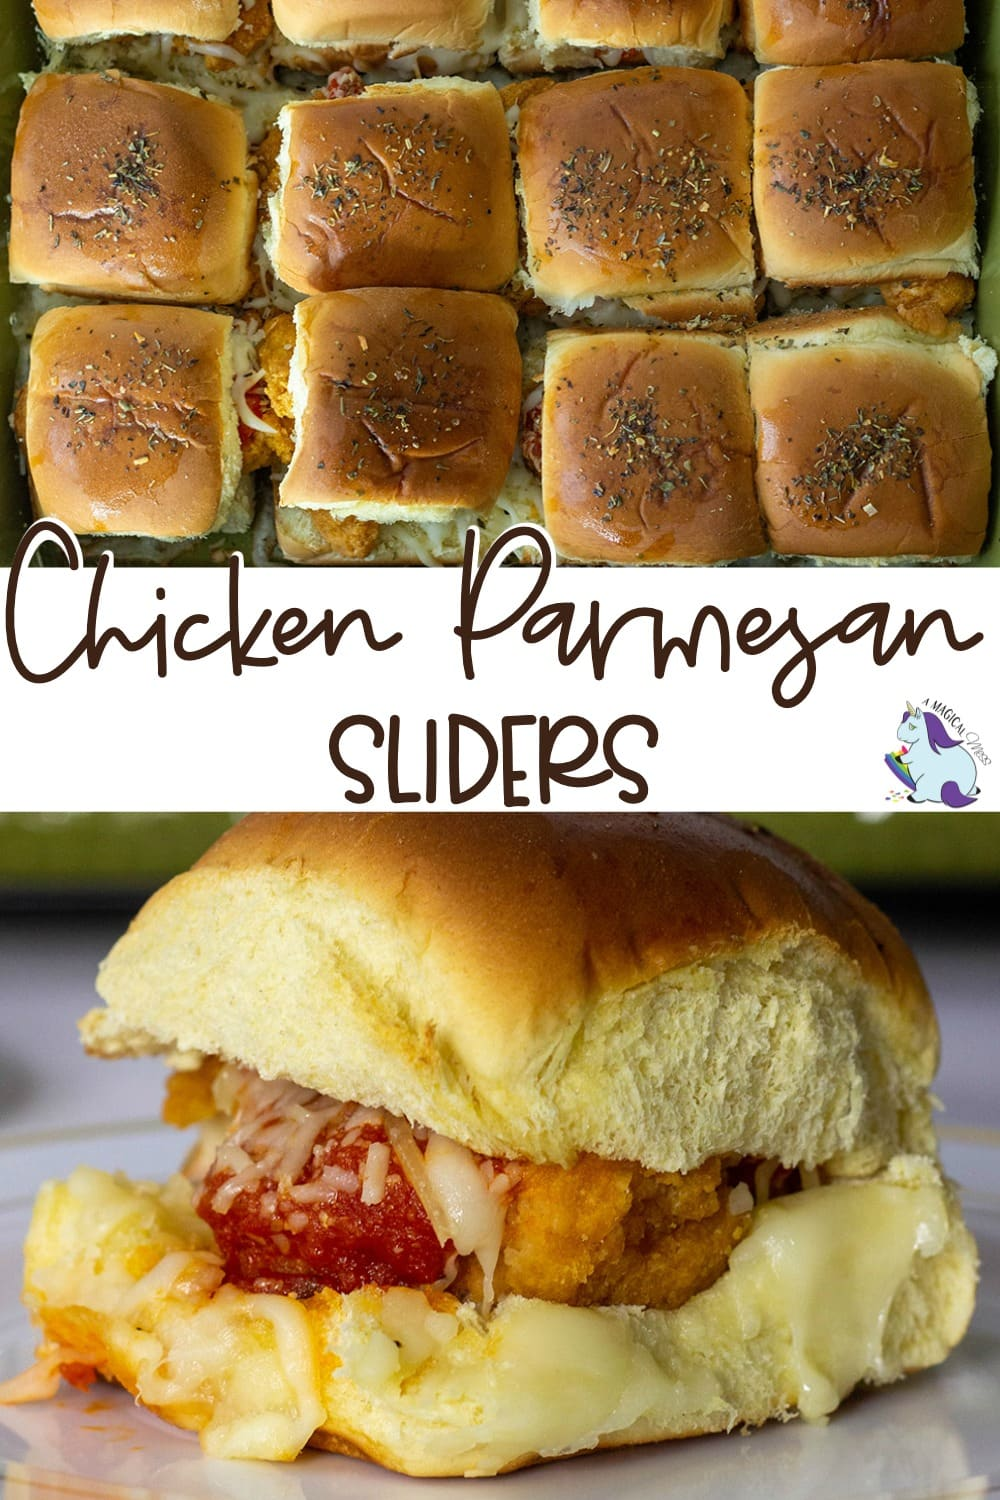 Chicken parmesan sliders on a plate and in a dish